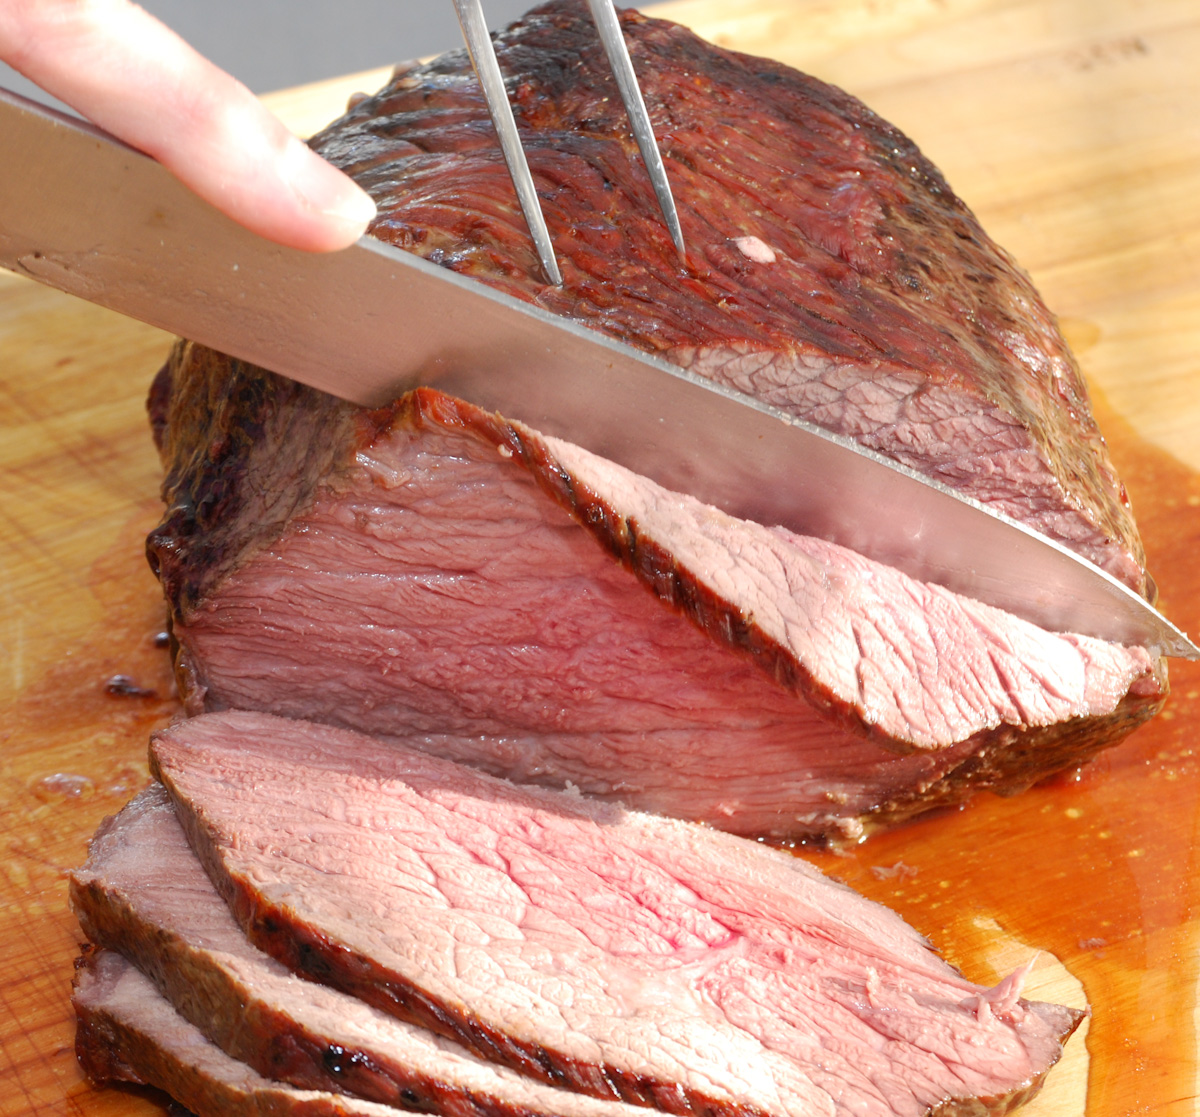 Cutting a joint of roast beef  Credit: Steve Johnson, Flickr